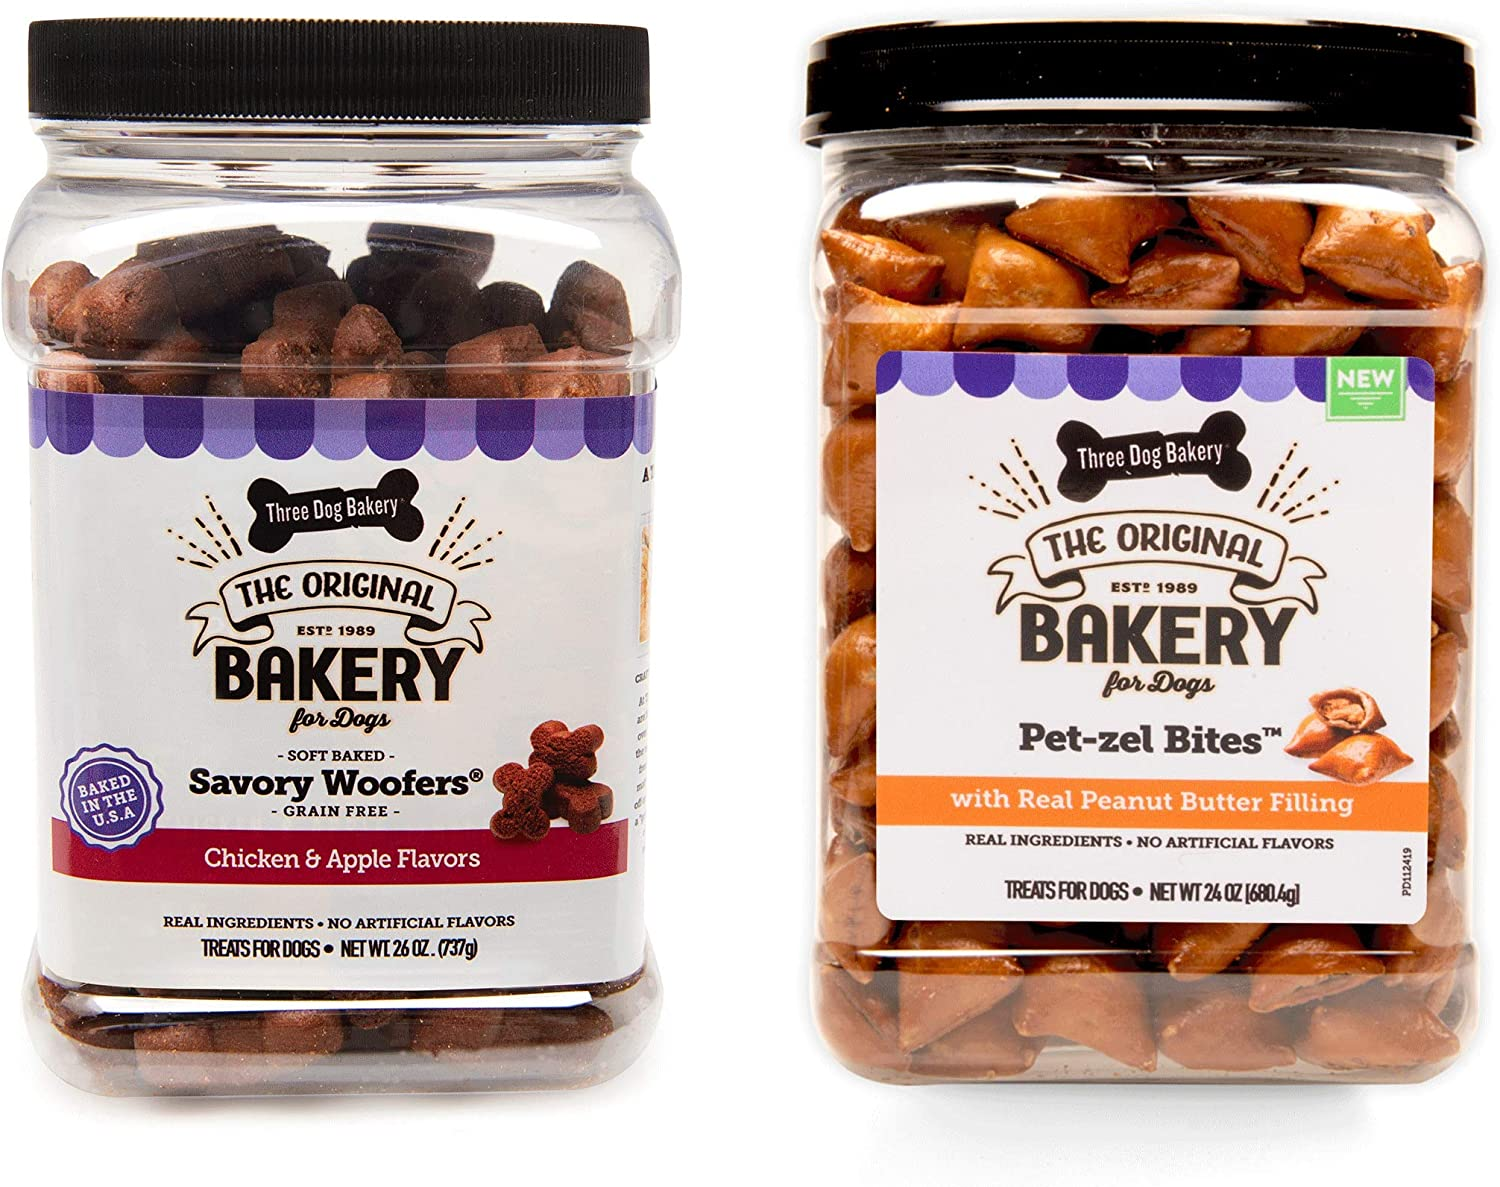 Three Dog Bakery Snack Jars Premium Treats for Dogs, Soft Baked Grain Free Meaty Woofers, Chicken and Apple & Crunchy Pet-zel Bites with Peanut Butter Filling, 49 Ounces, 2-Pack